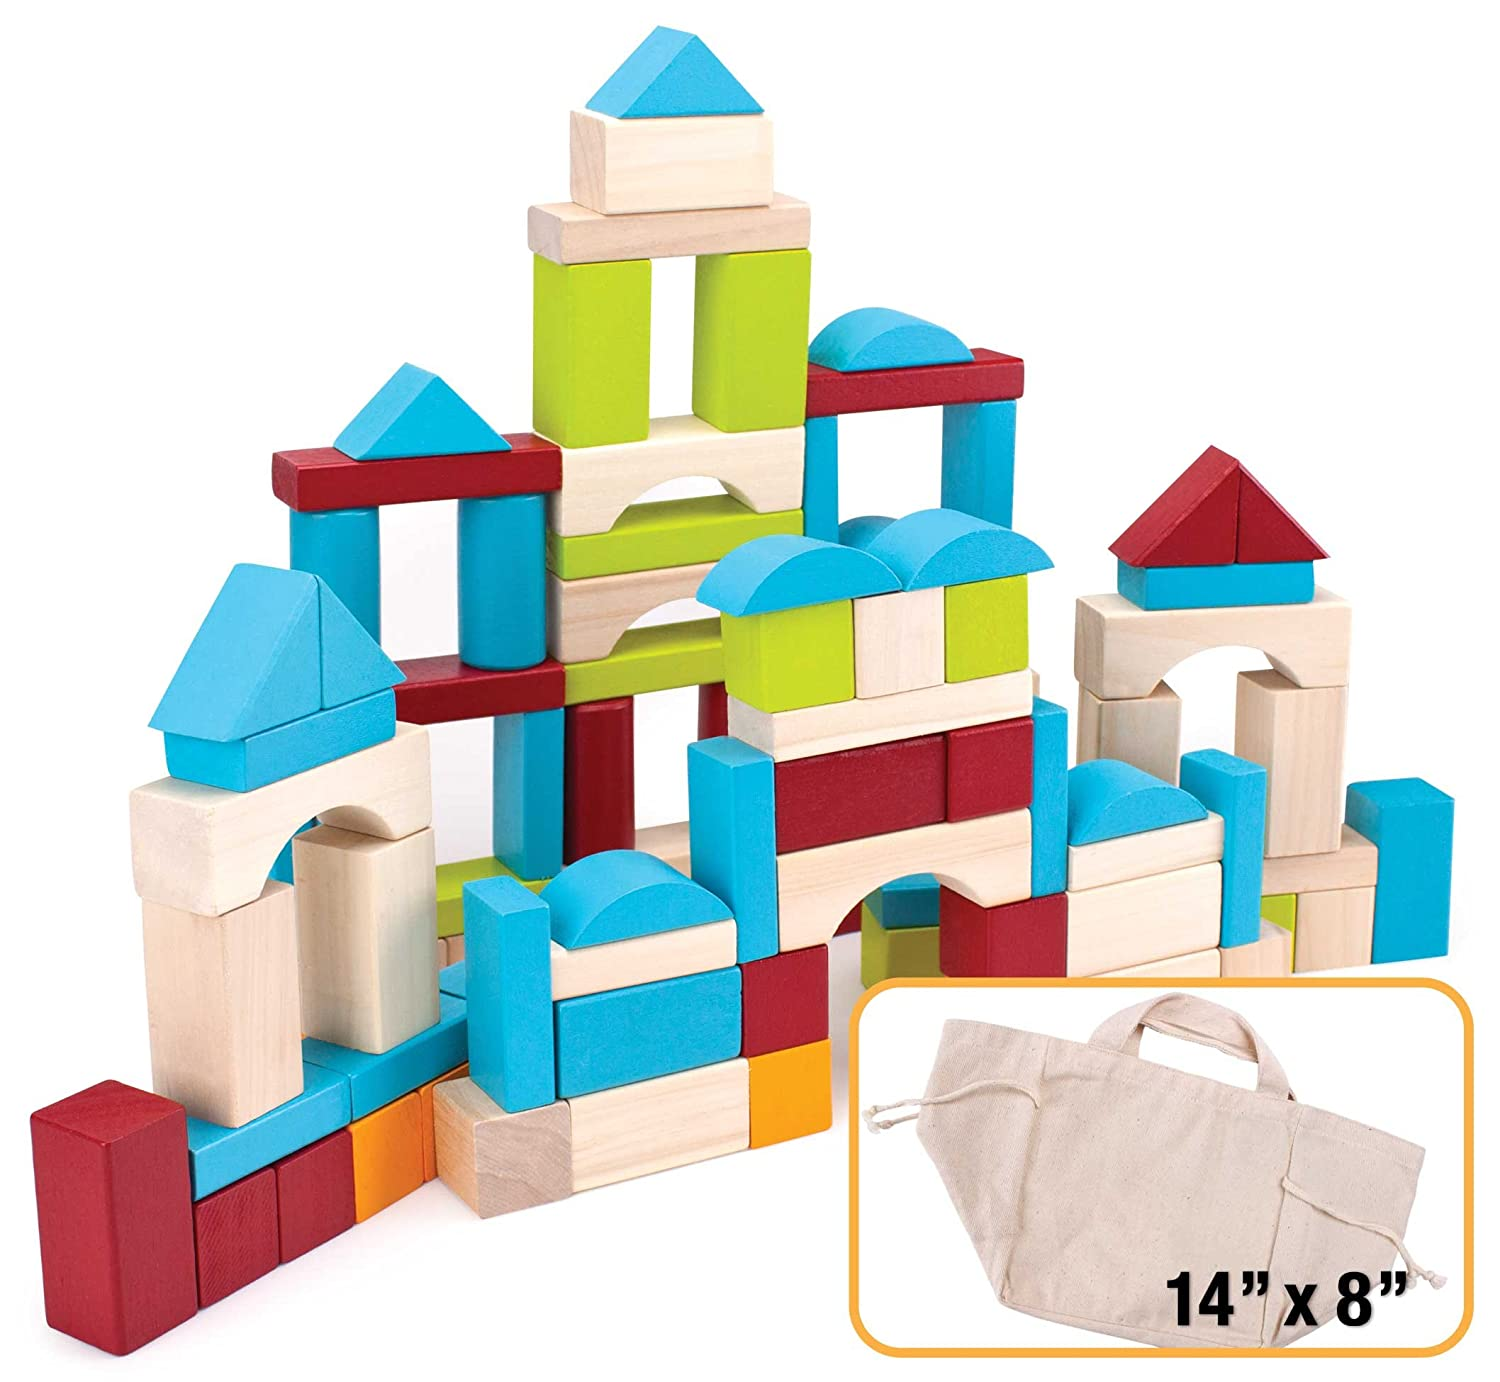 Amazon 100 Piece Natural Wooden Building Block Set with